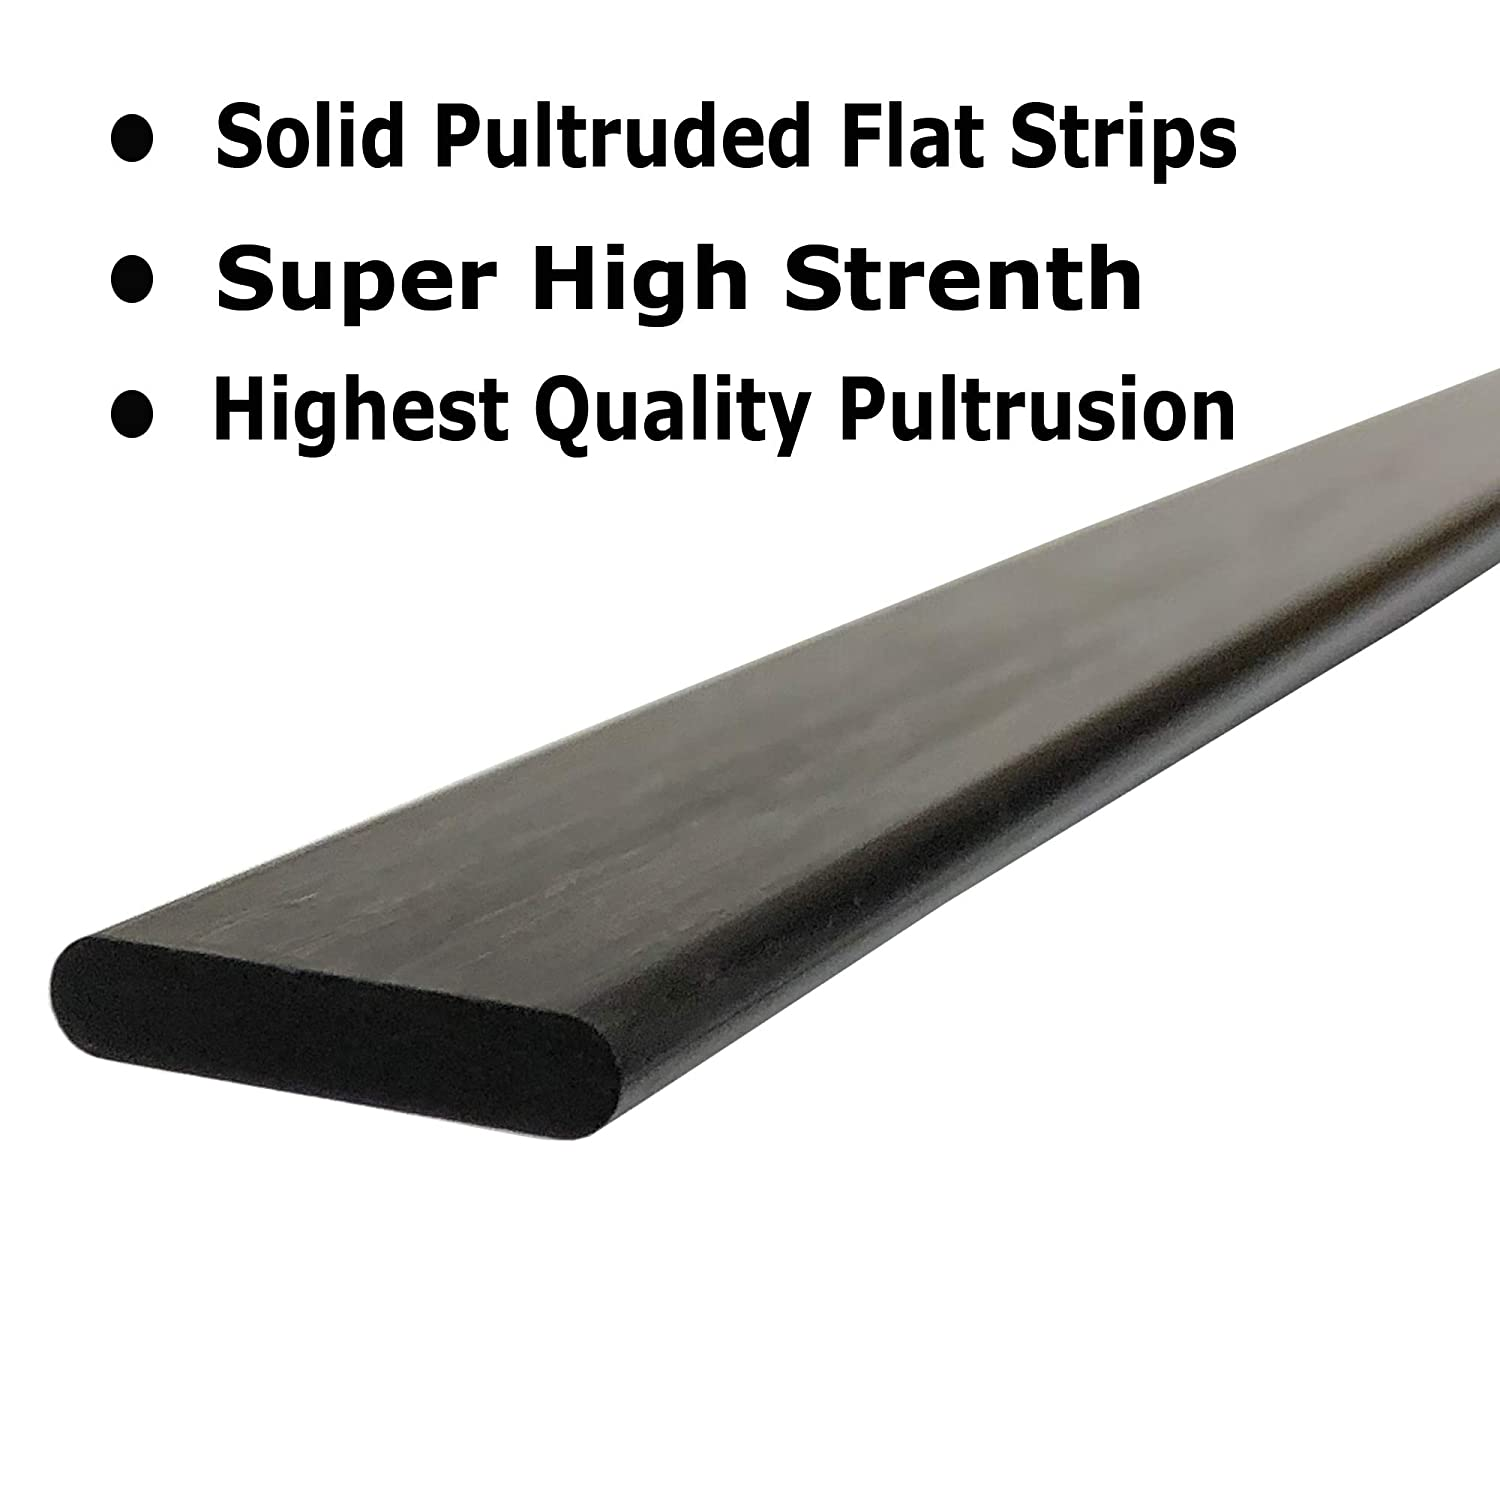 1 Radio Controlled Vehicles PULTRUDED-Flat Carbon Fiber Bar Used for Drones 100/% Pultruded high Strength Carbon Fiber Projects requiring high Strength Components 4mm x 20mm 1000mm